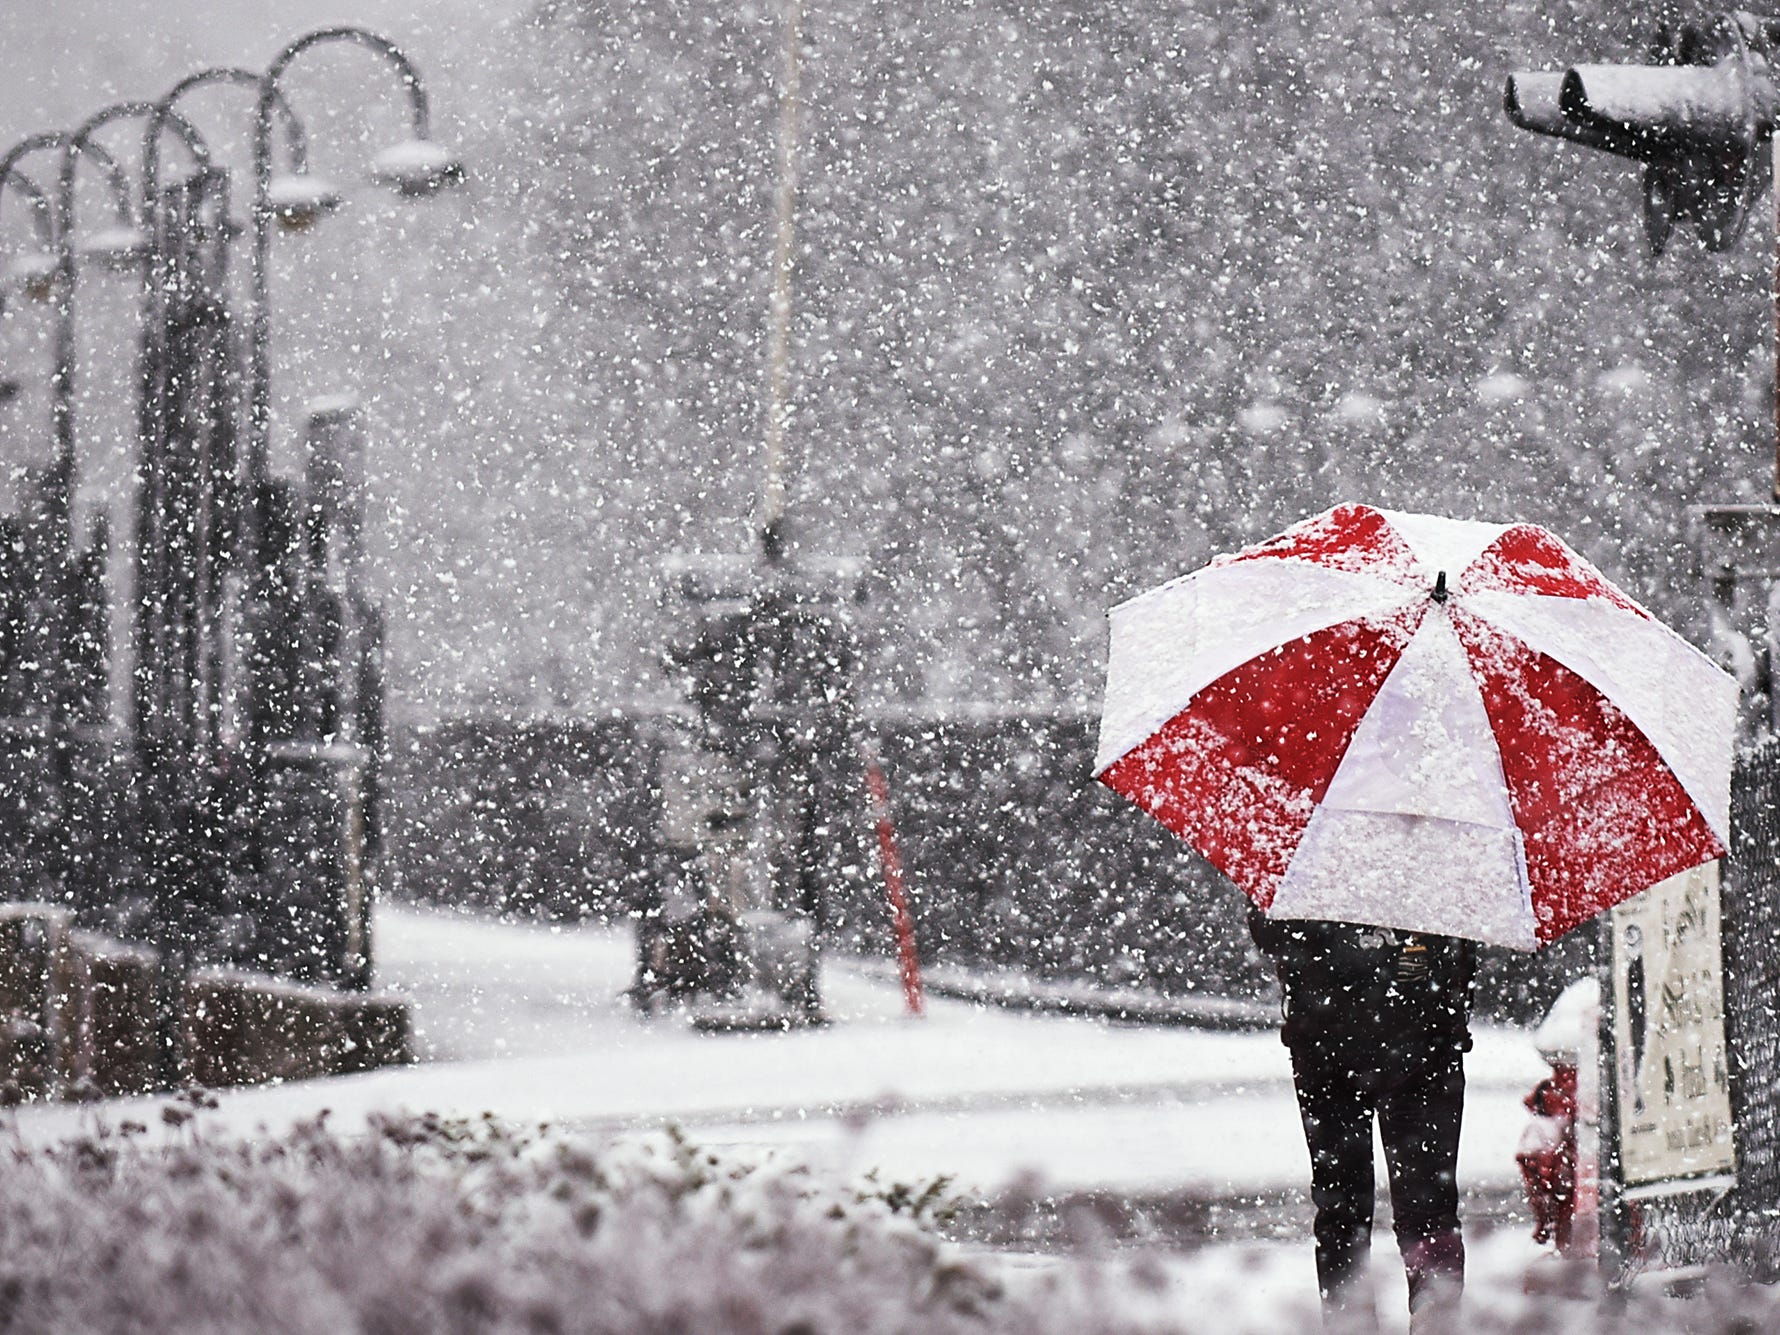 A person walks near the Rutherford train station in the Snow on Wednesday March 07, 2018.